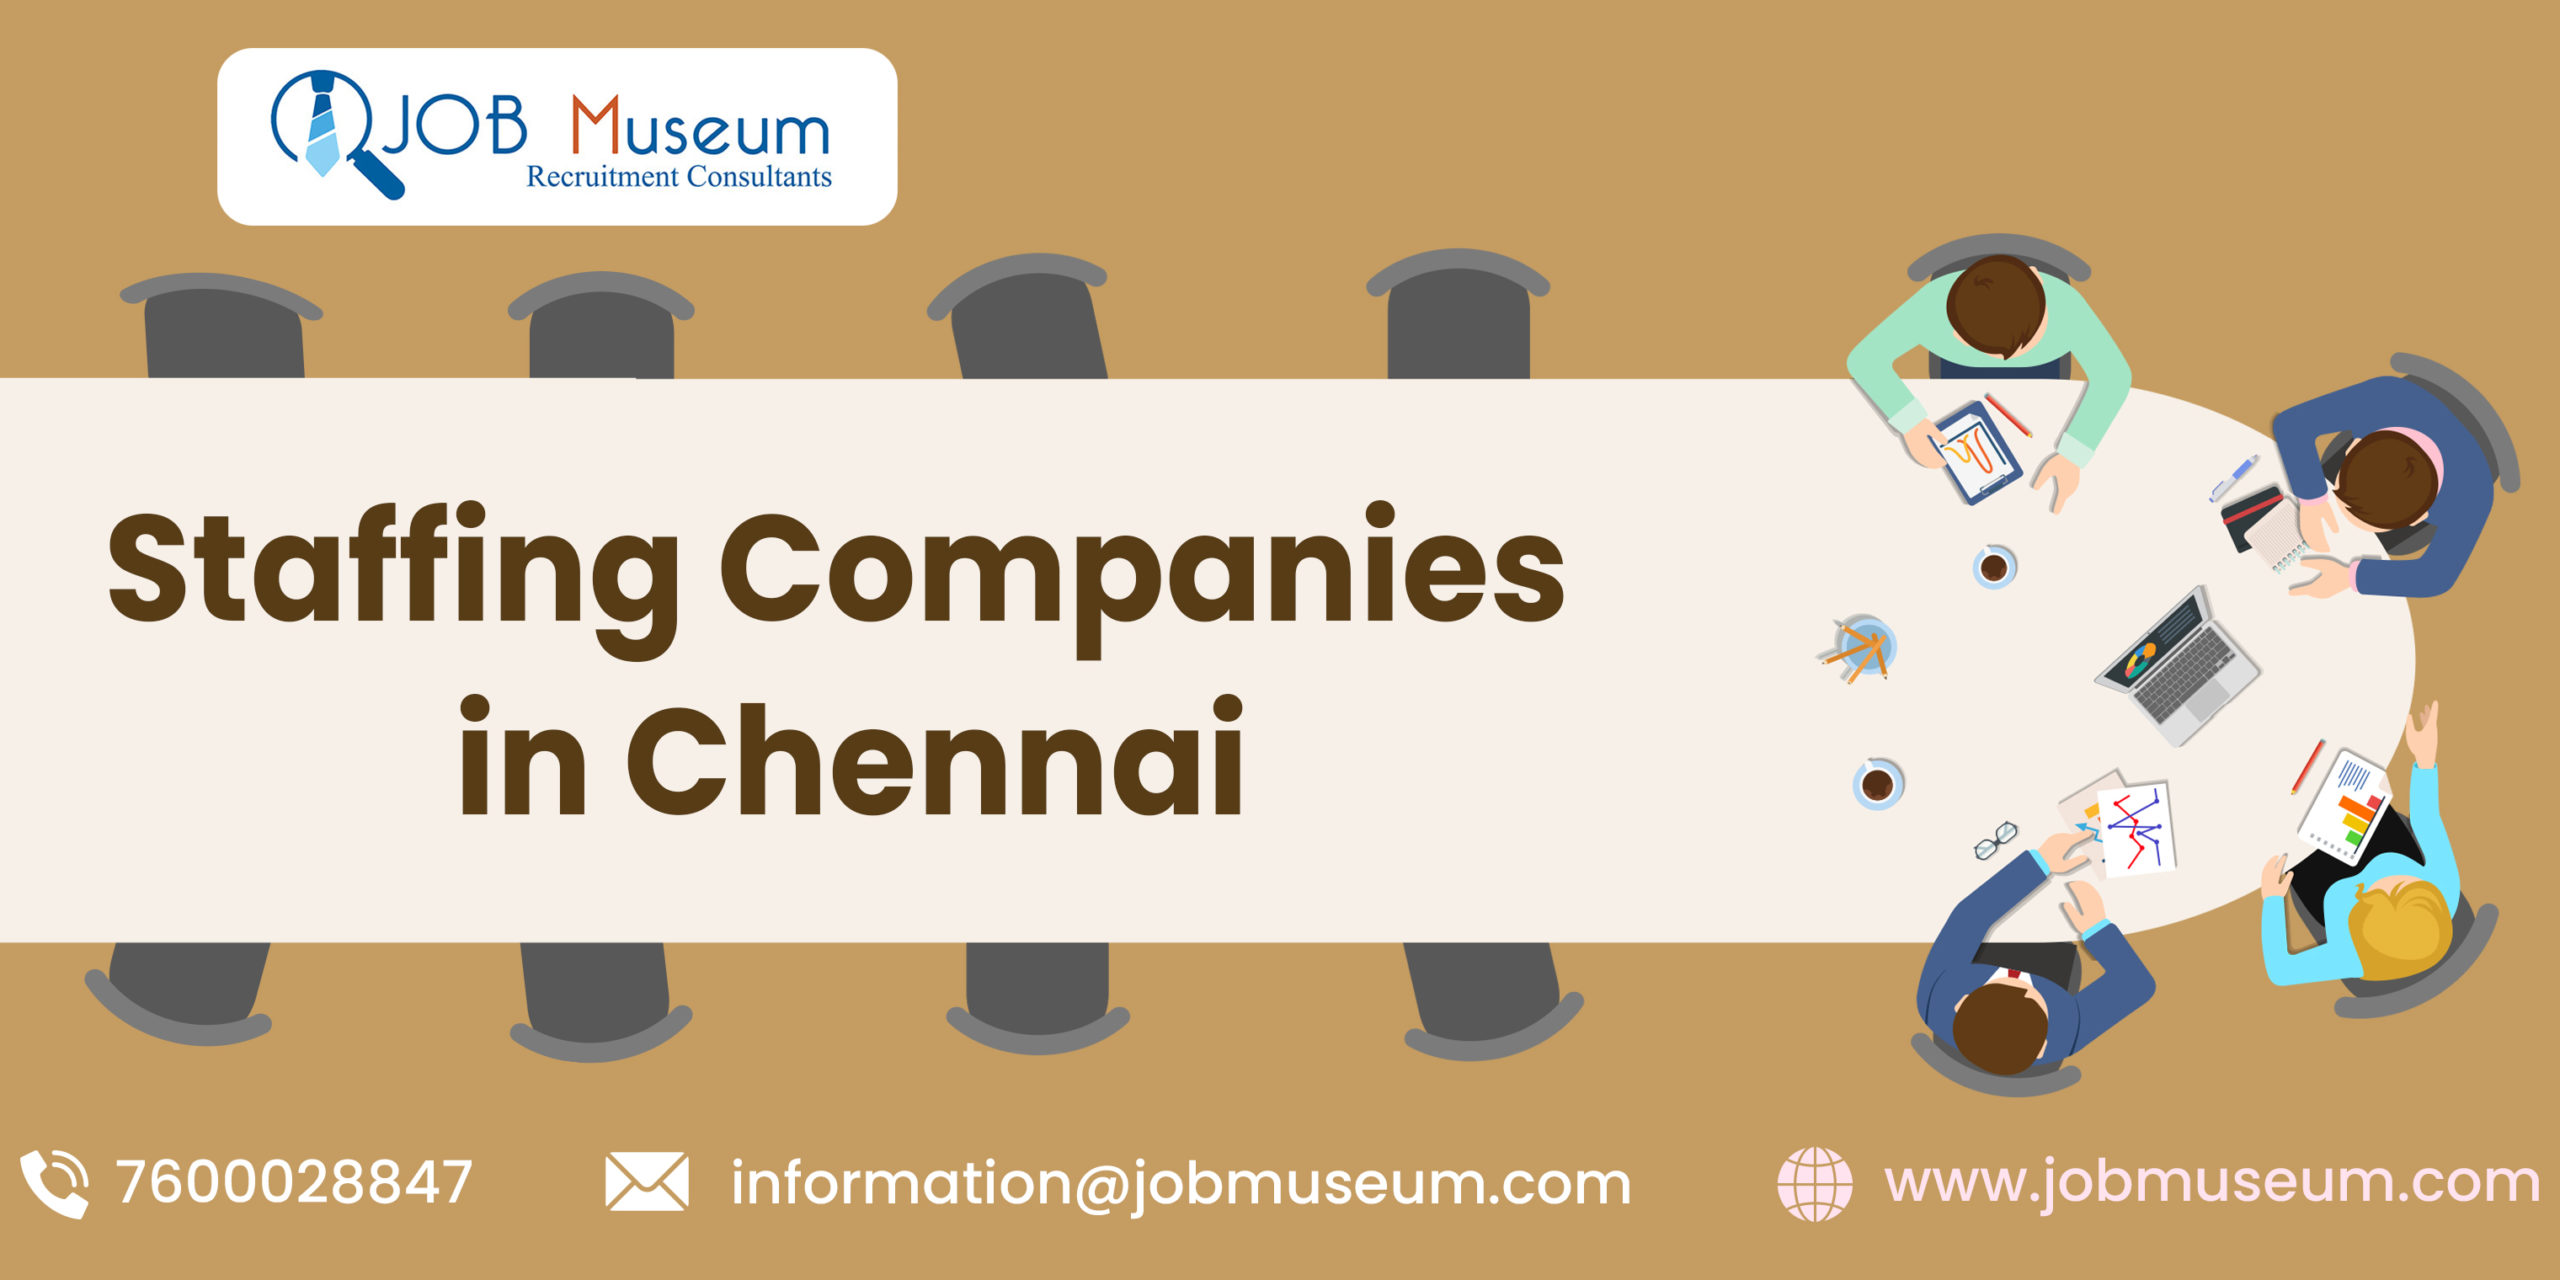 IT staffing companies in Chennai